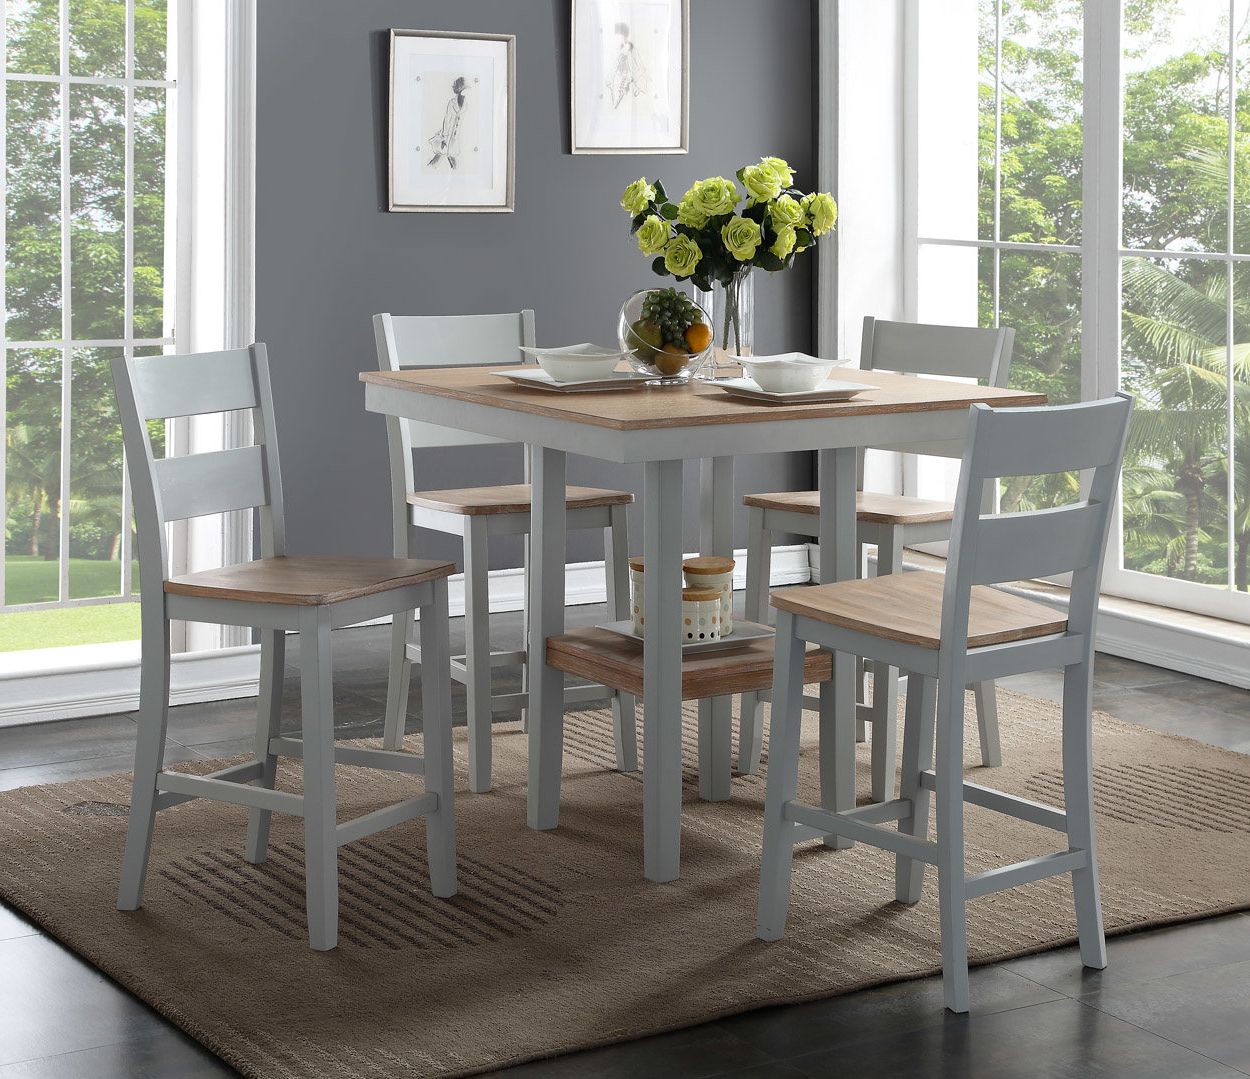 5 Piece Breakfast Nook Dining Sets Within Best And Newest August Grove Liesel Counter 5 Piece Breakfast Nook Solid Wood Dining (View 8 of 25)